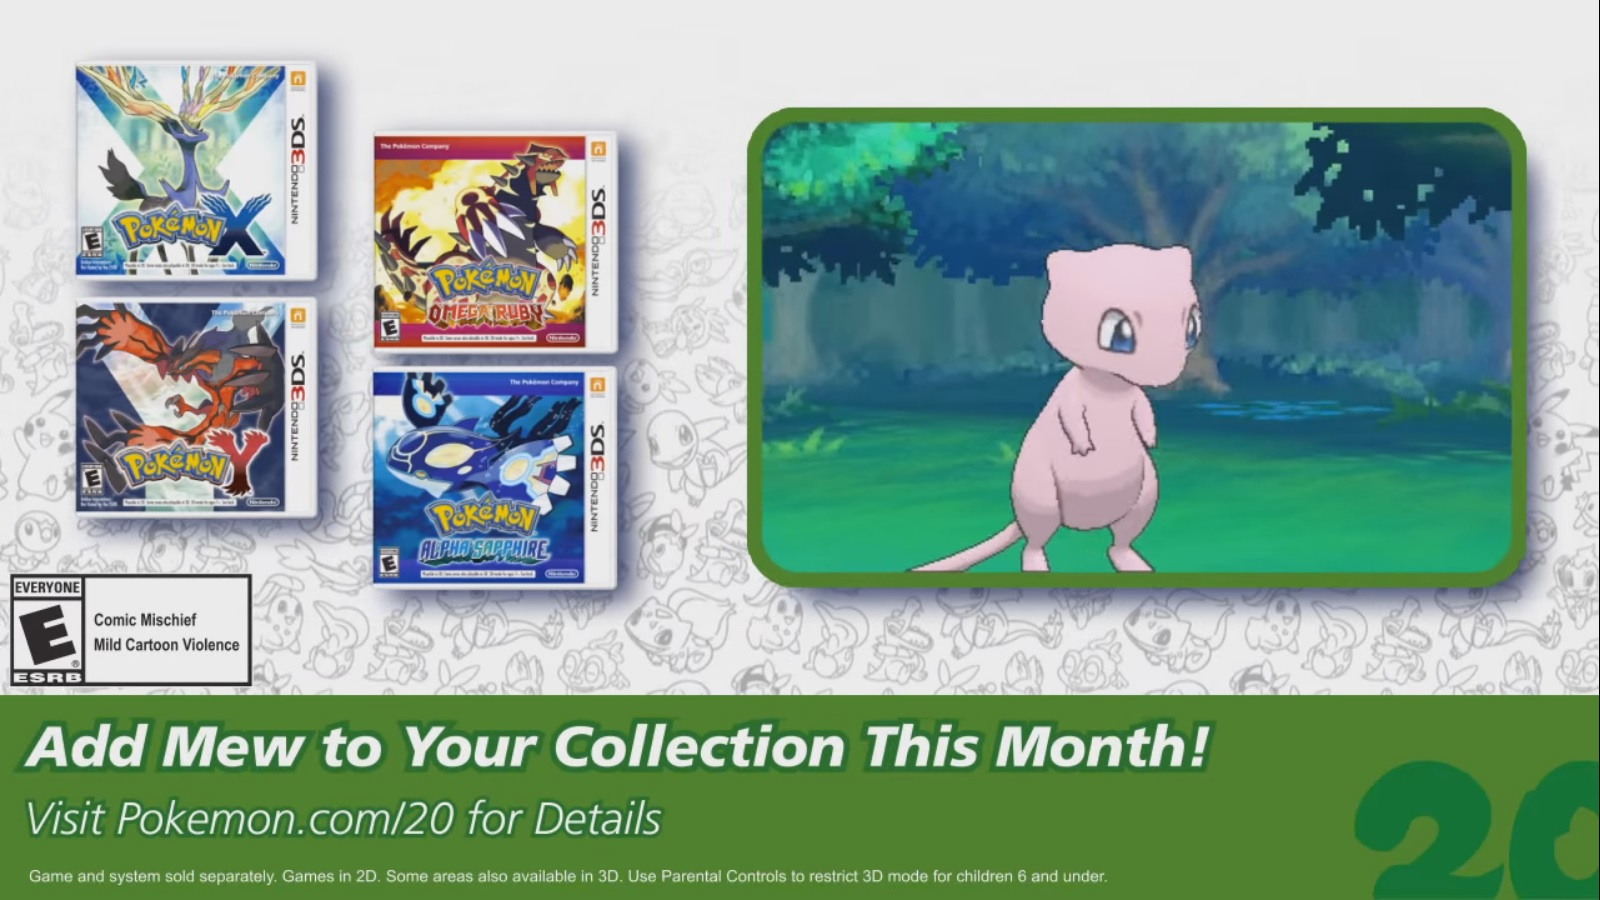 Pokemon Omega Ruby/Alpha Sapphire and X/Y – Mew distribution trailer